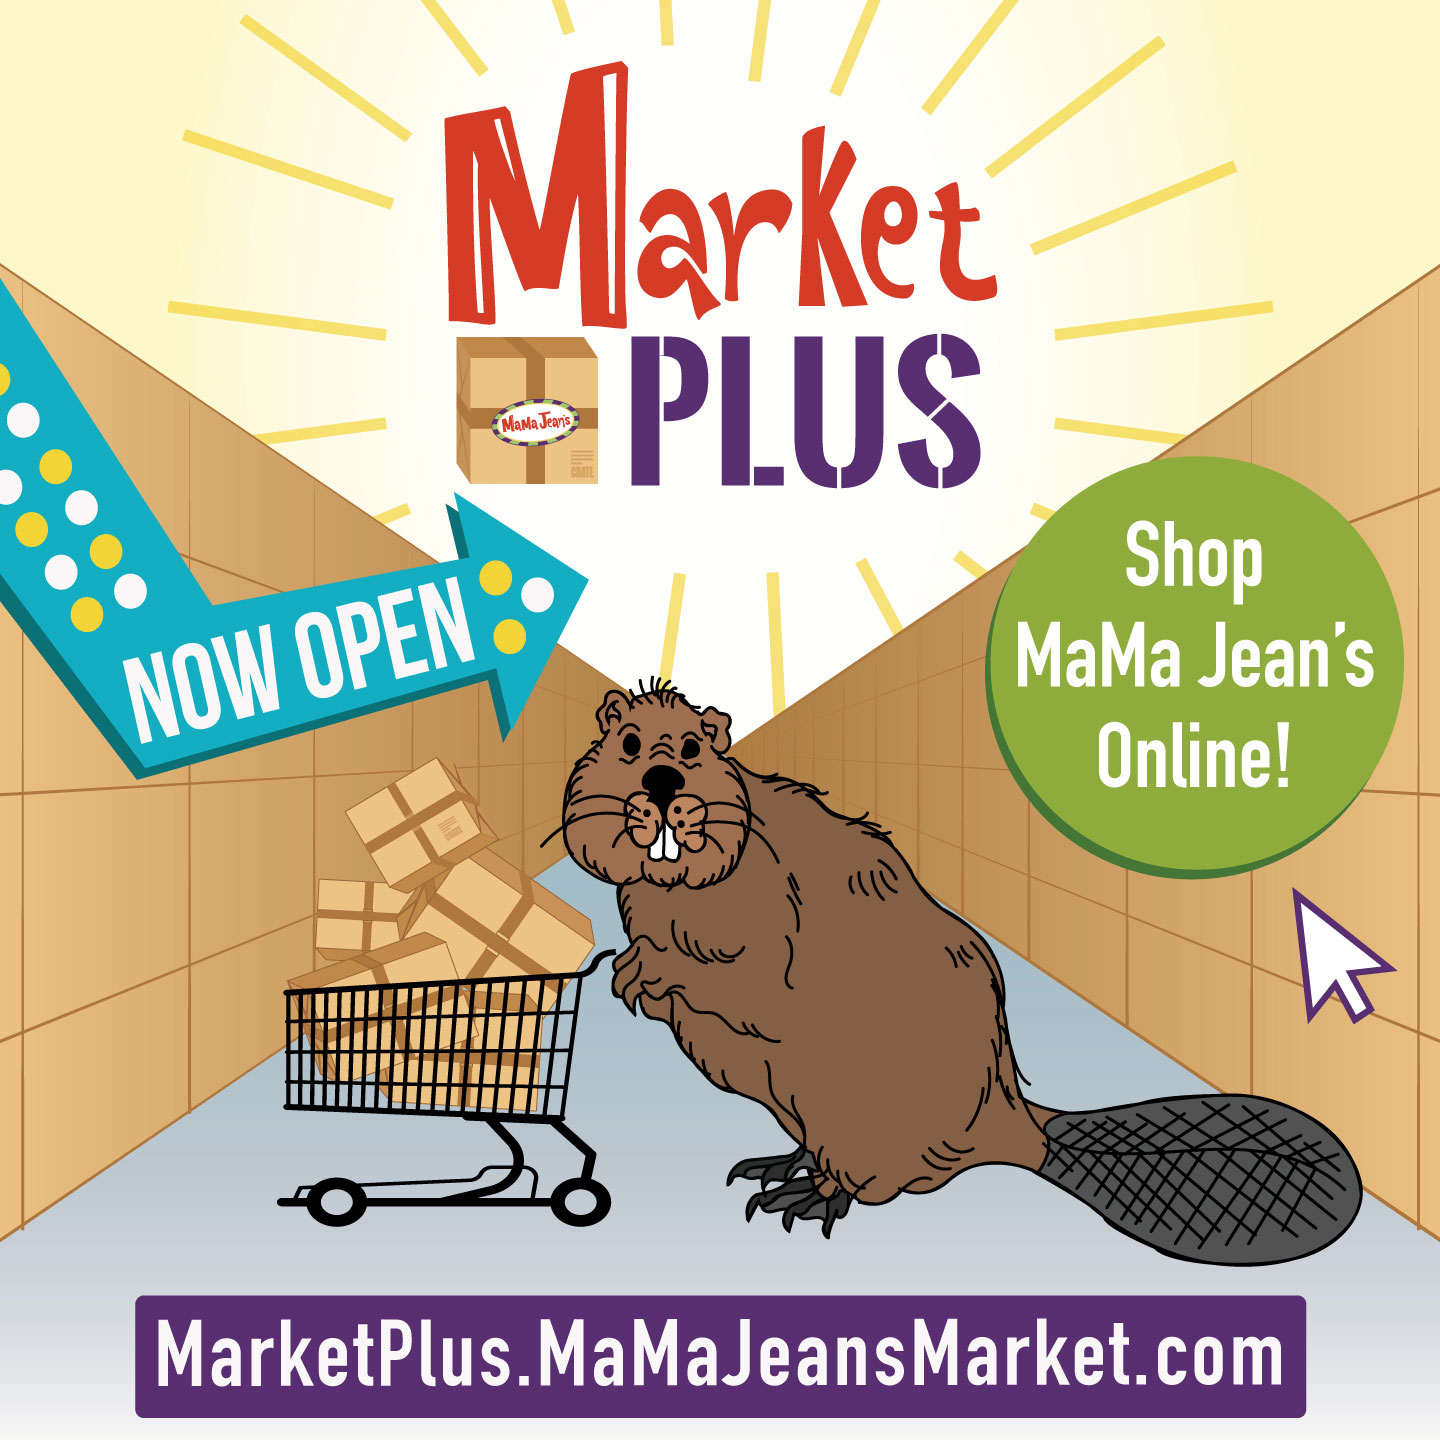 Online Shopping MaMa Jean's Market Plus